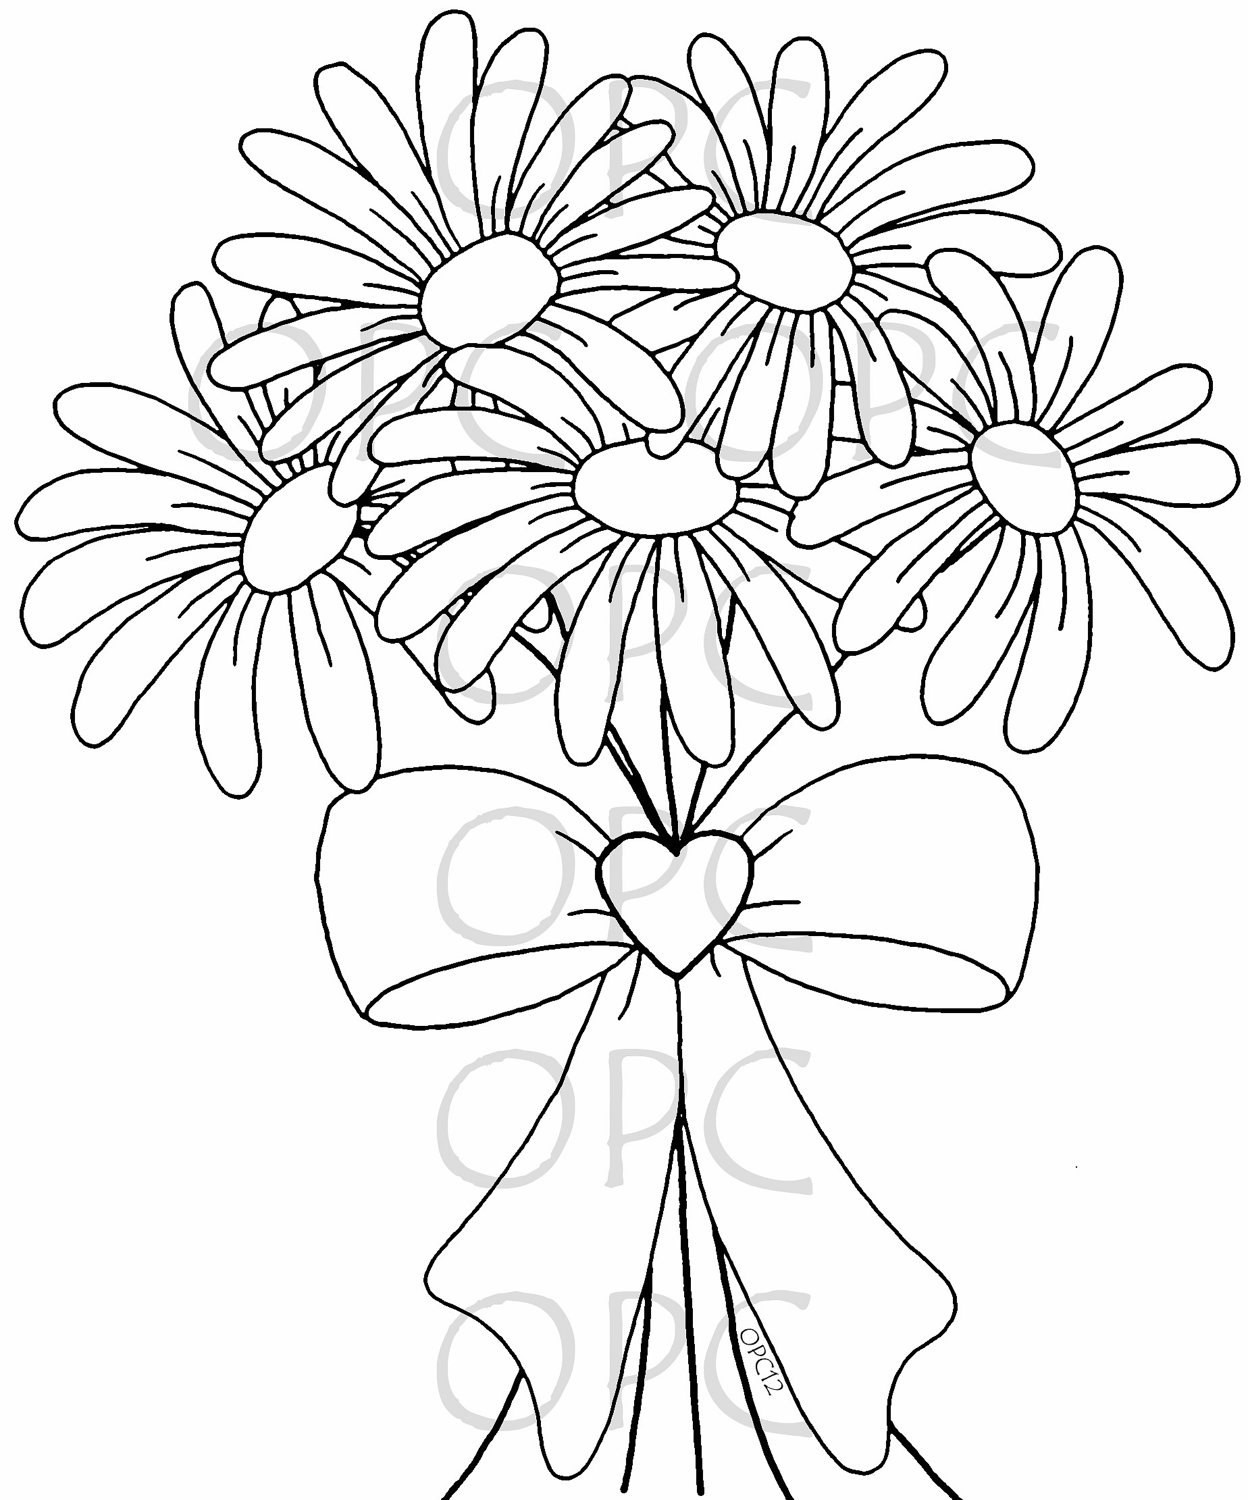 Daisy Coloring Pages  Gerber Daisy Free Colouring Pages